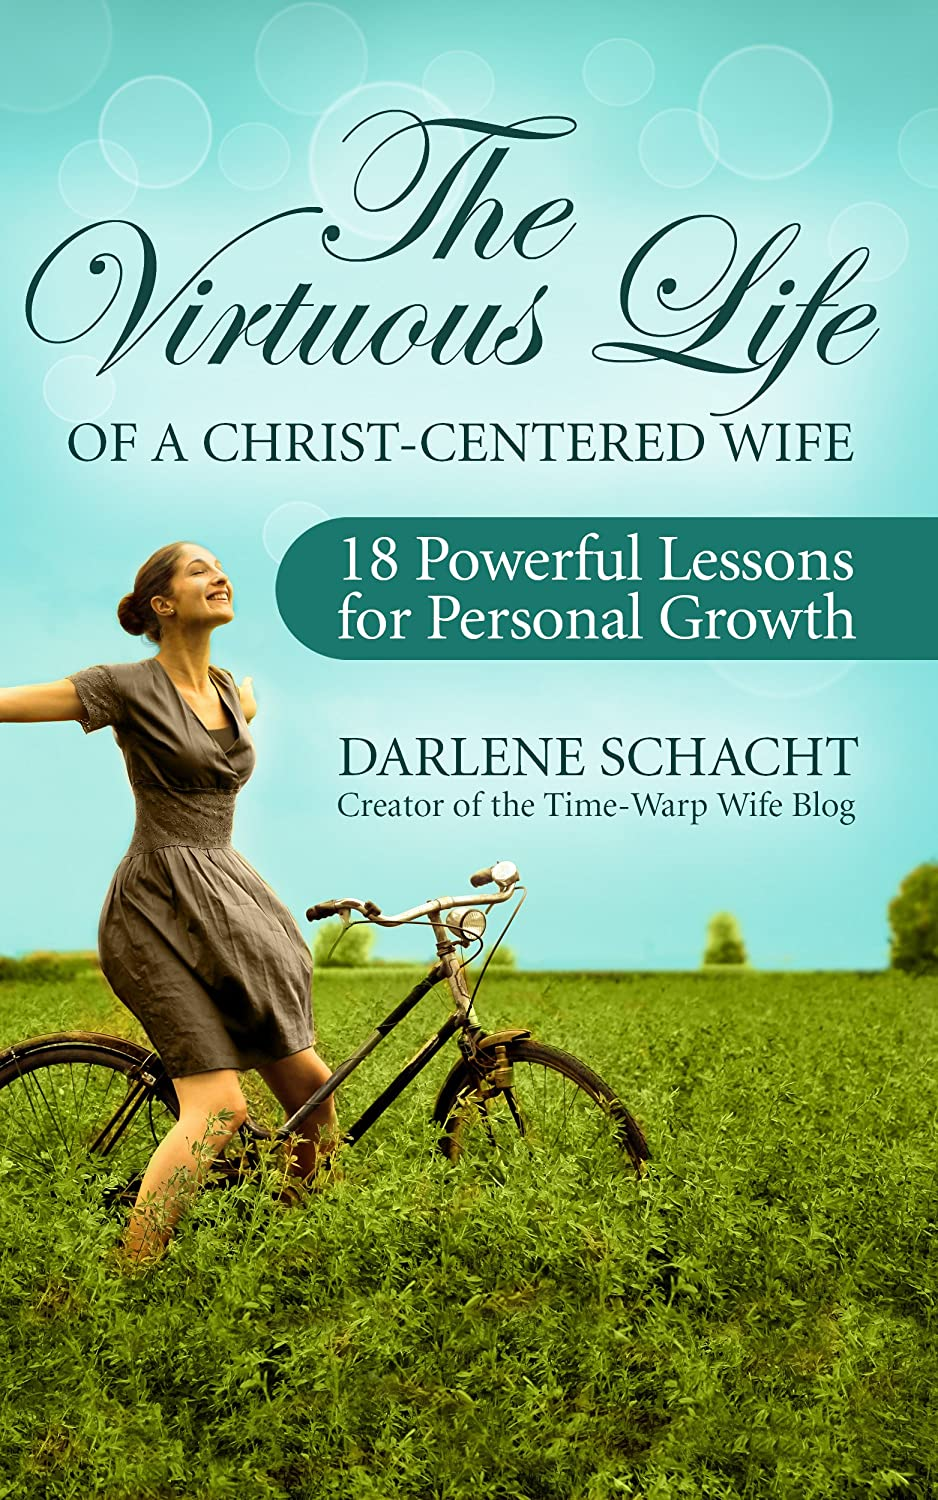 The Virtuous Life of a Christ-Centered Wife   A Review  {Reading List}